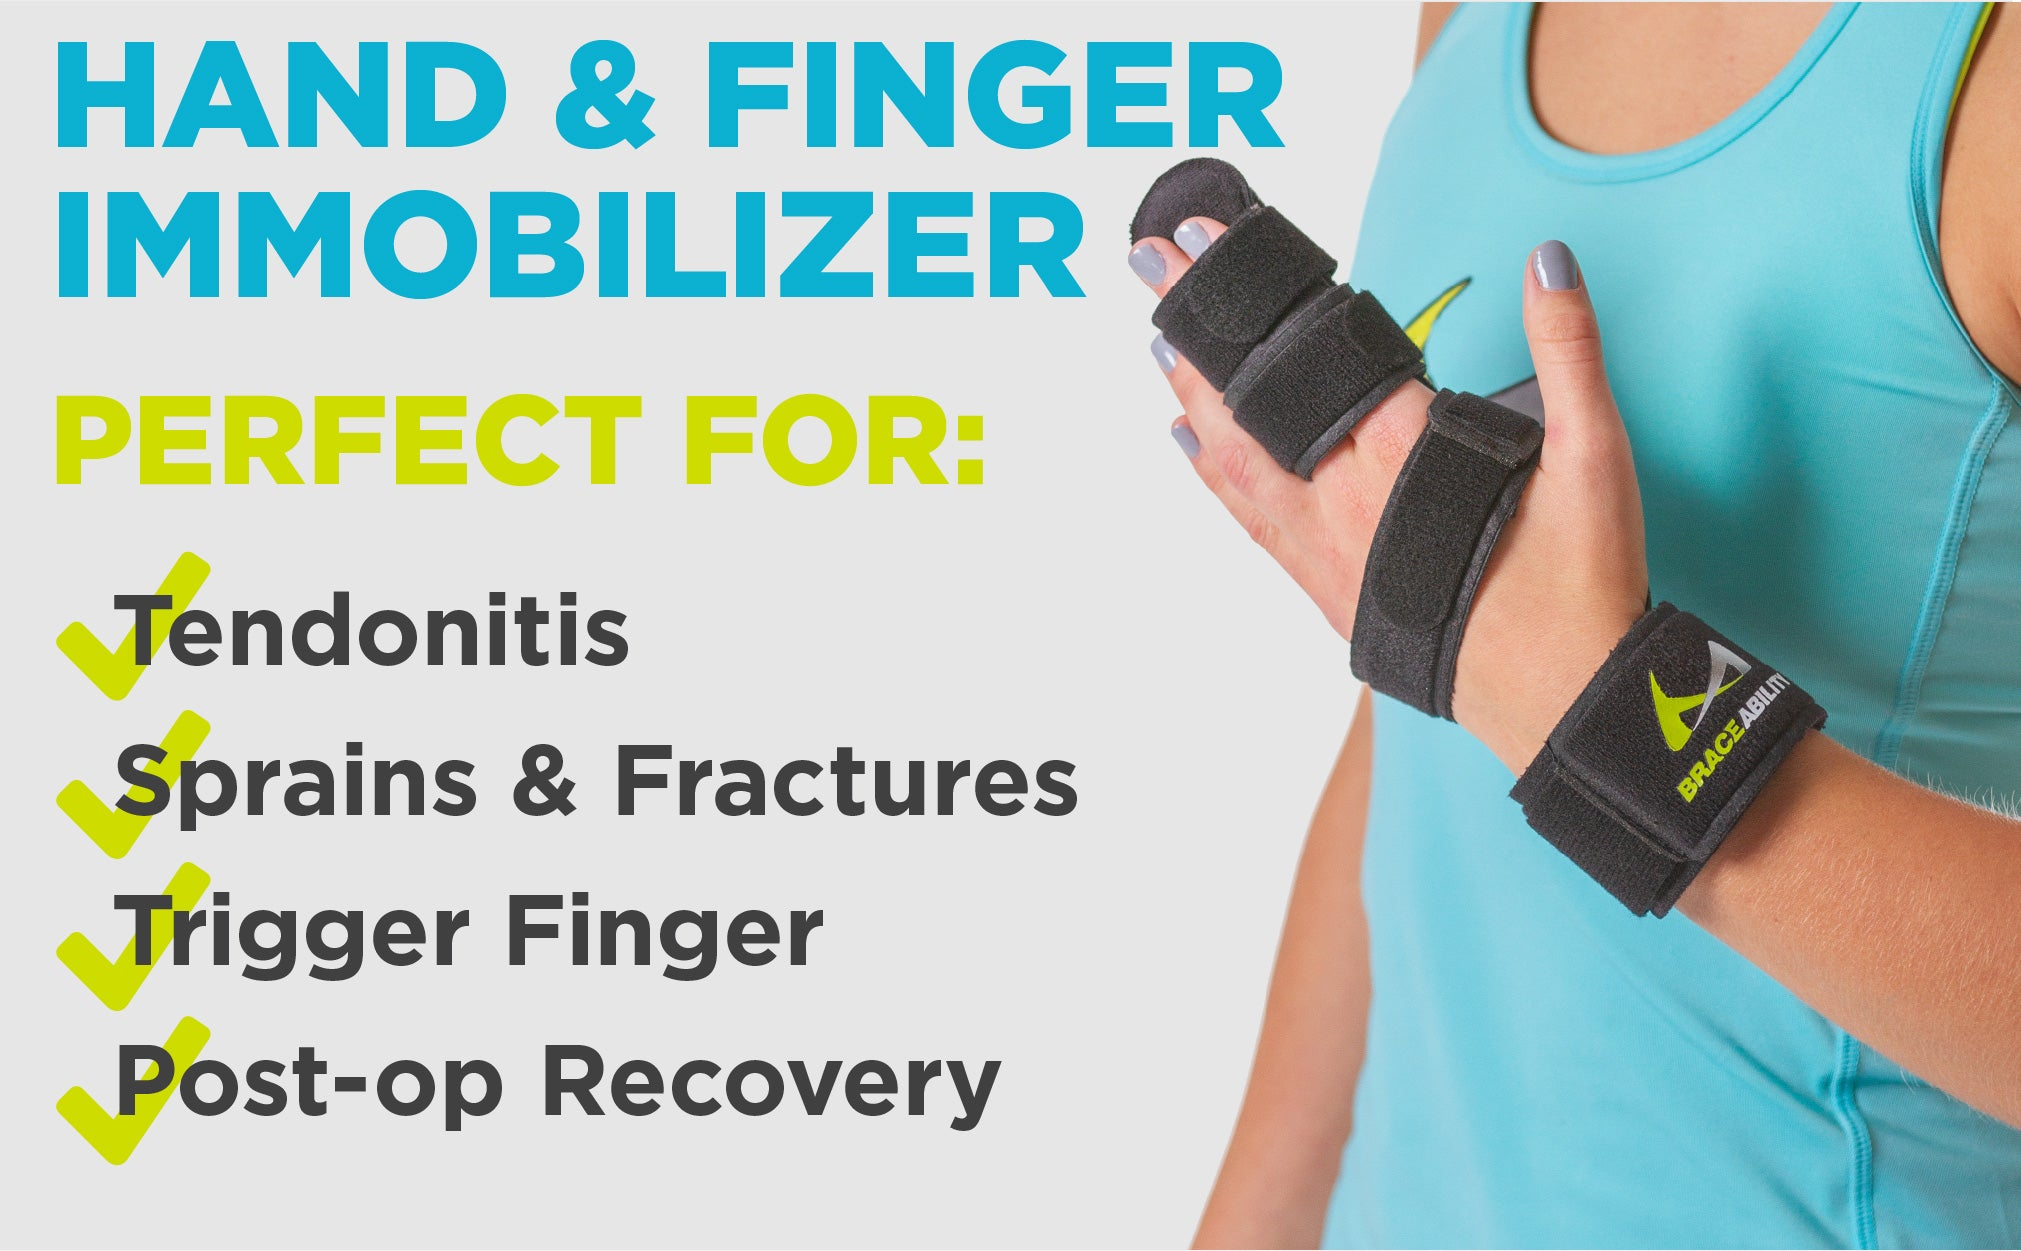 the hand and finger immobilizer treats tendonitis, sprains and fractures, and trigger finger